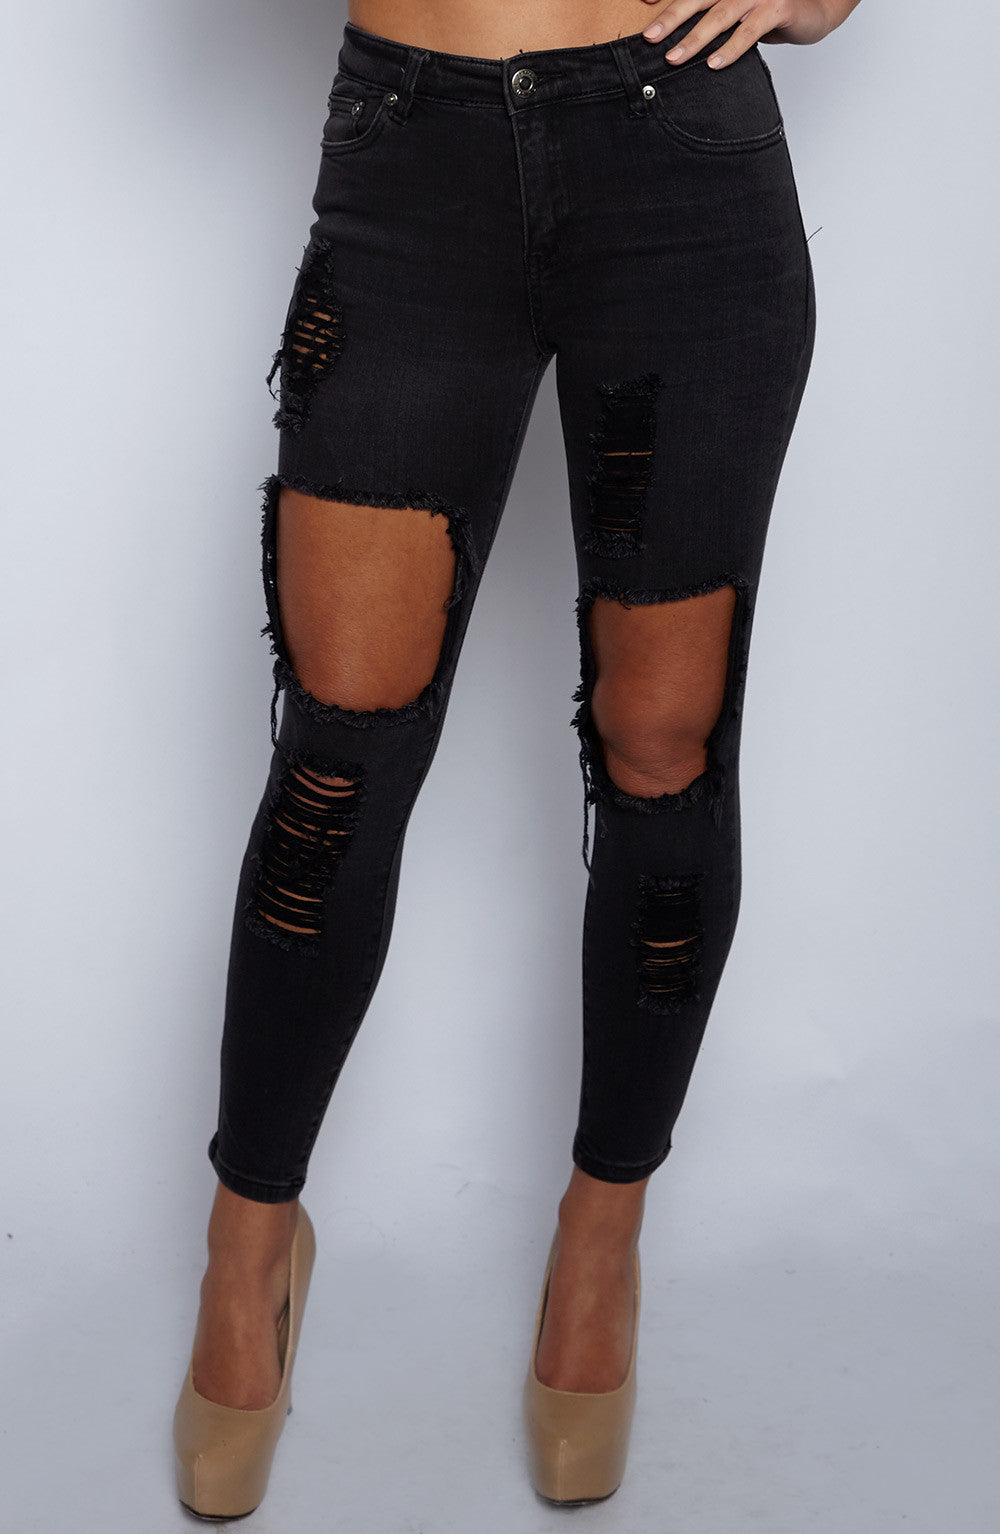 Honey Crush Jeans - Black Denim